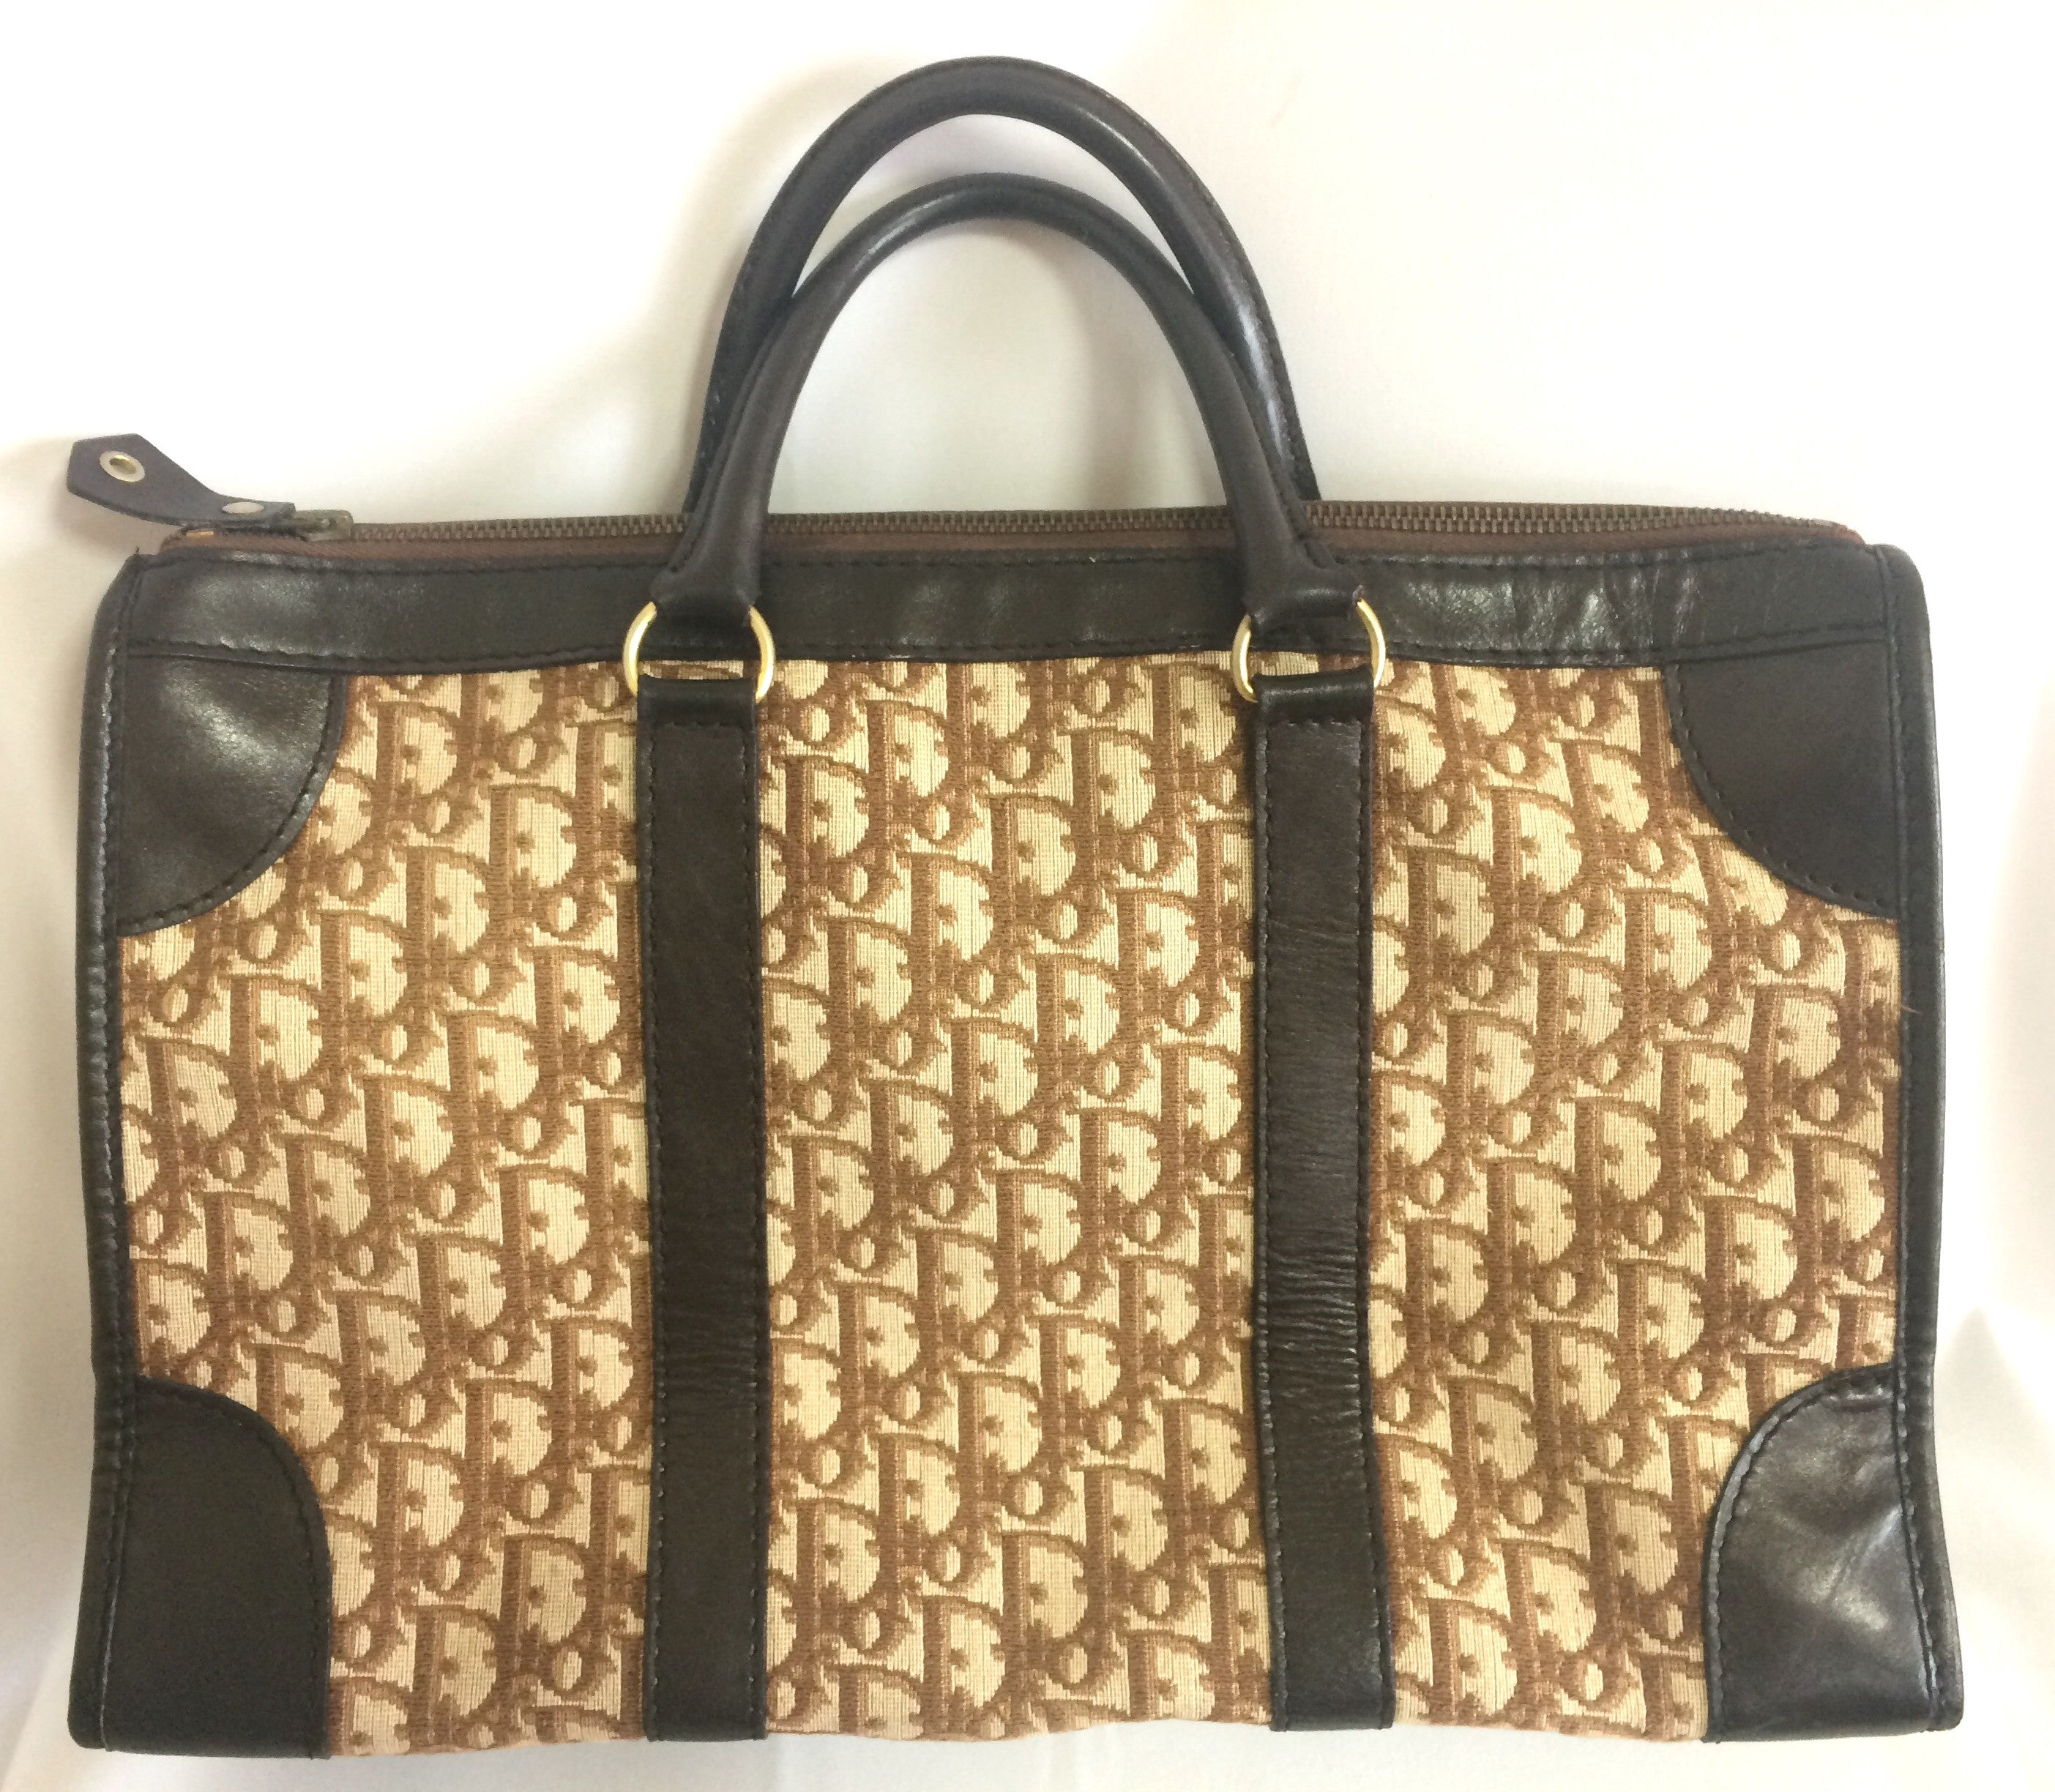 70 s Christian Dior vintage brown and beige trotter monogram tote ... 943b5124bbad0